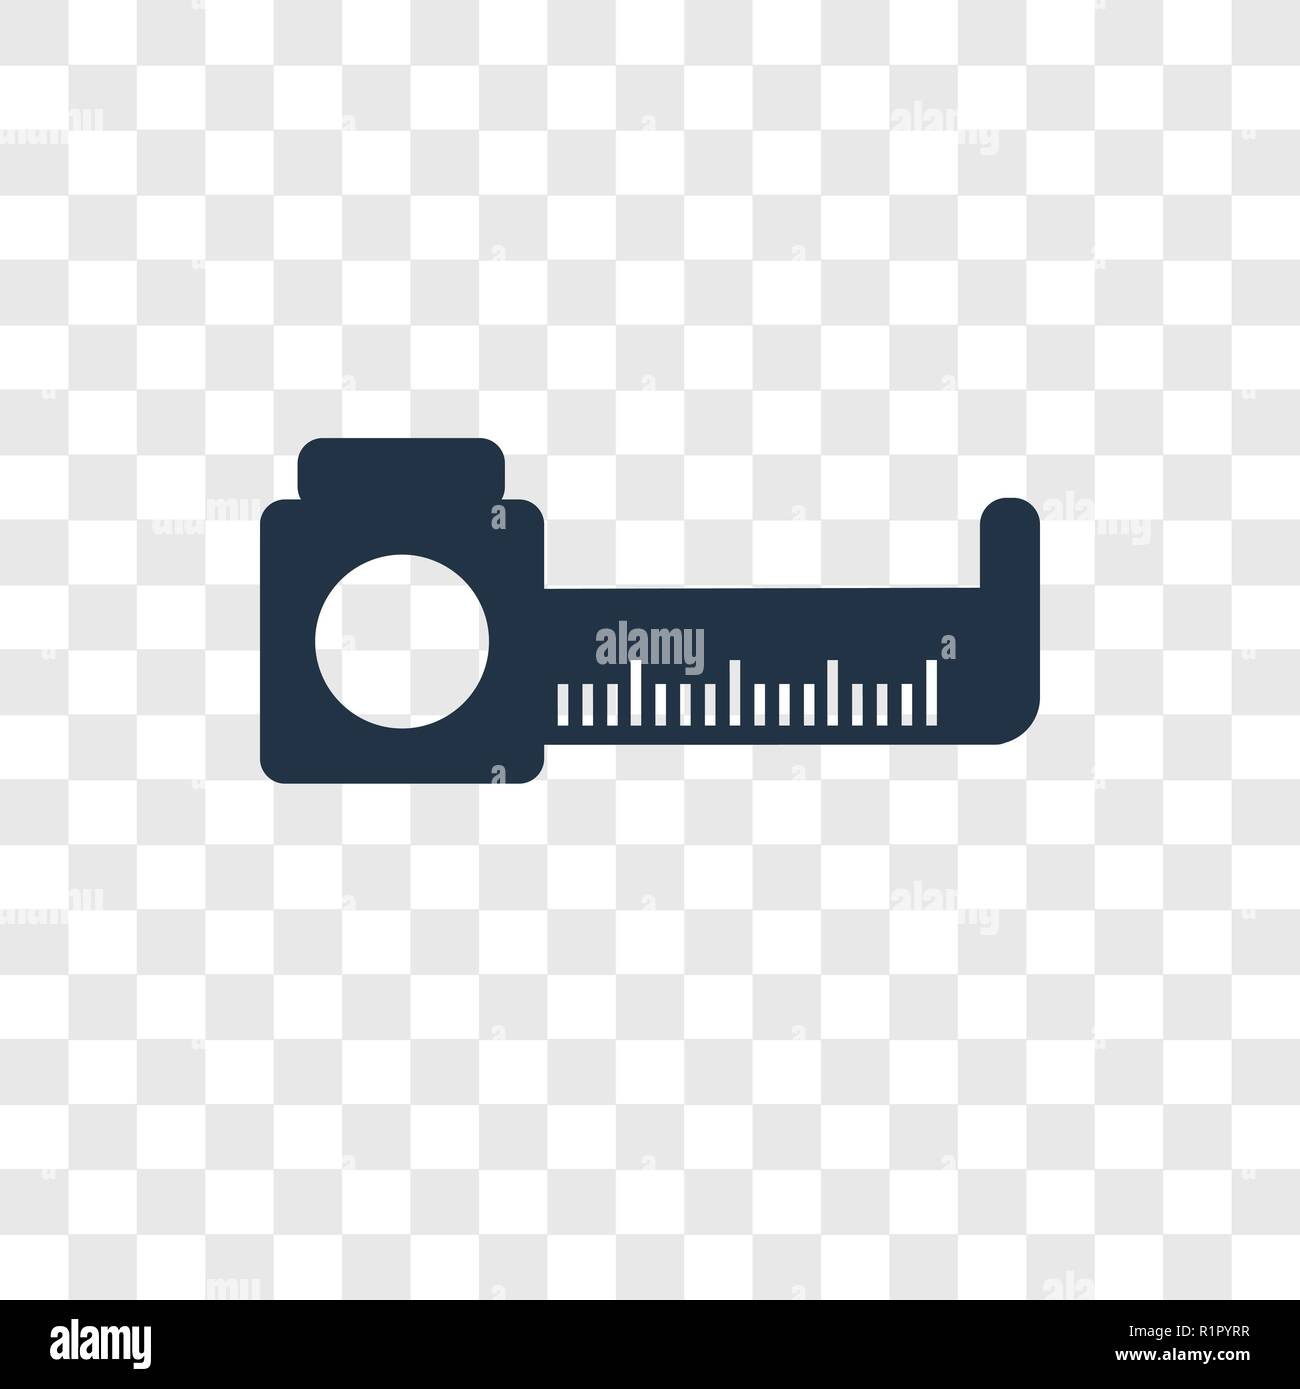 Measure vector icon isolated on transparent background, Measure transparency logo concept - Stock Image